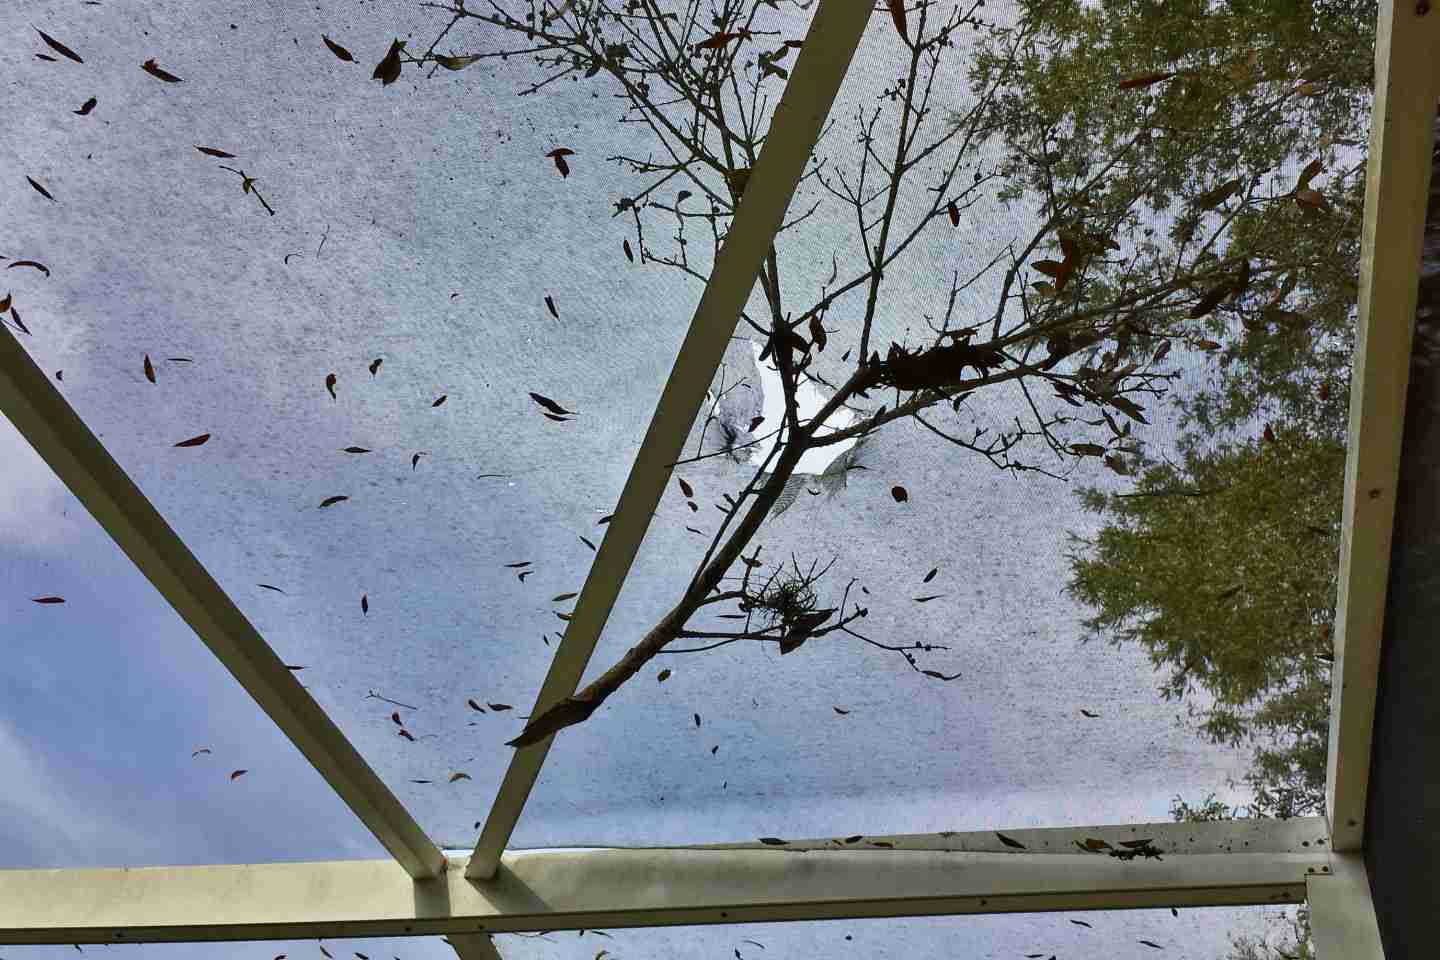 07-pool-enclosure-roof-screen-branch-damage.jpg